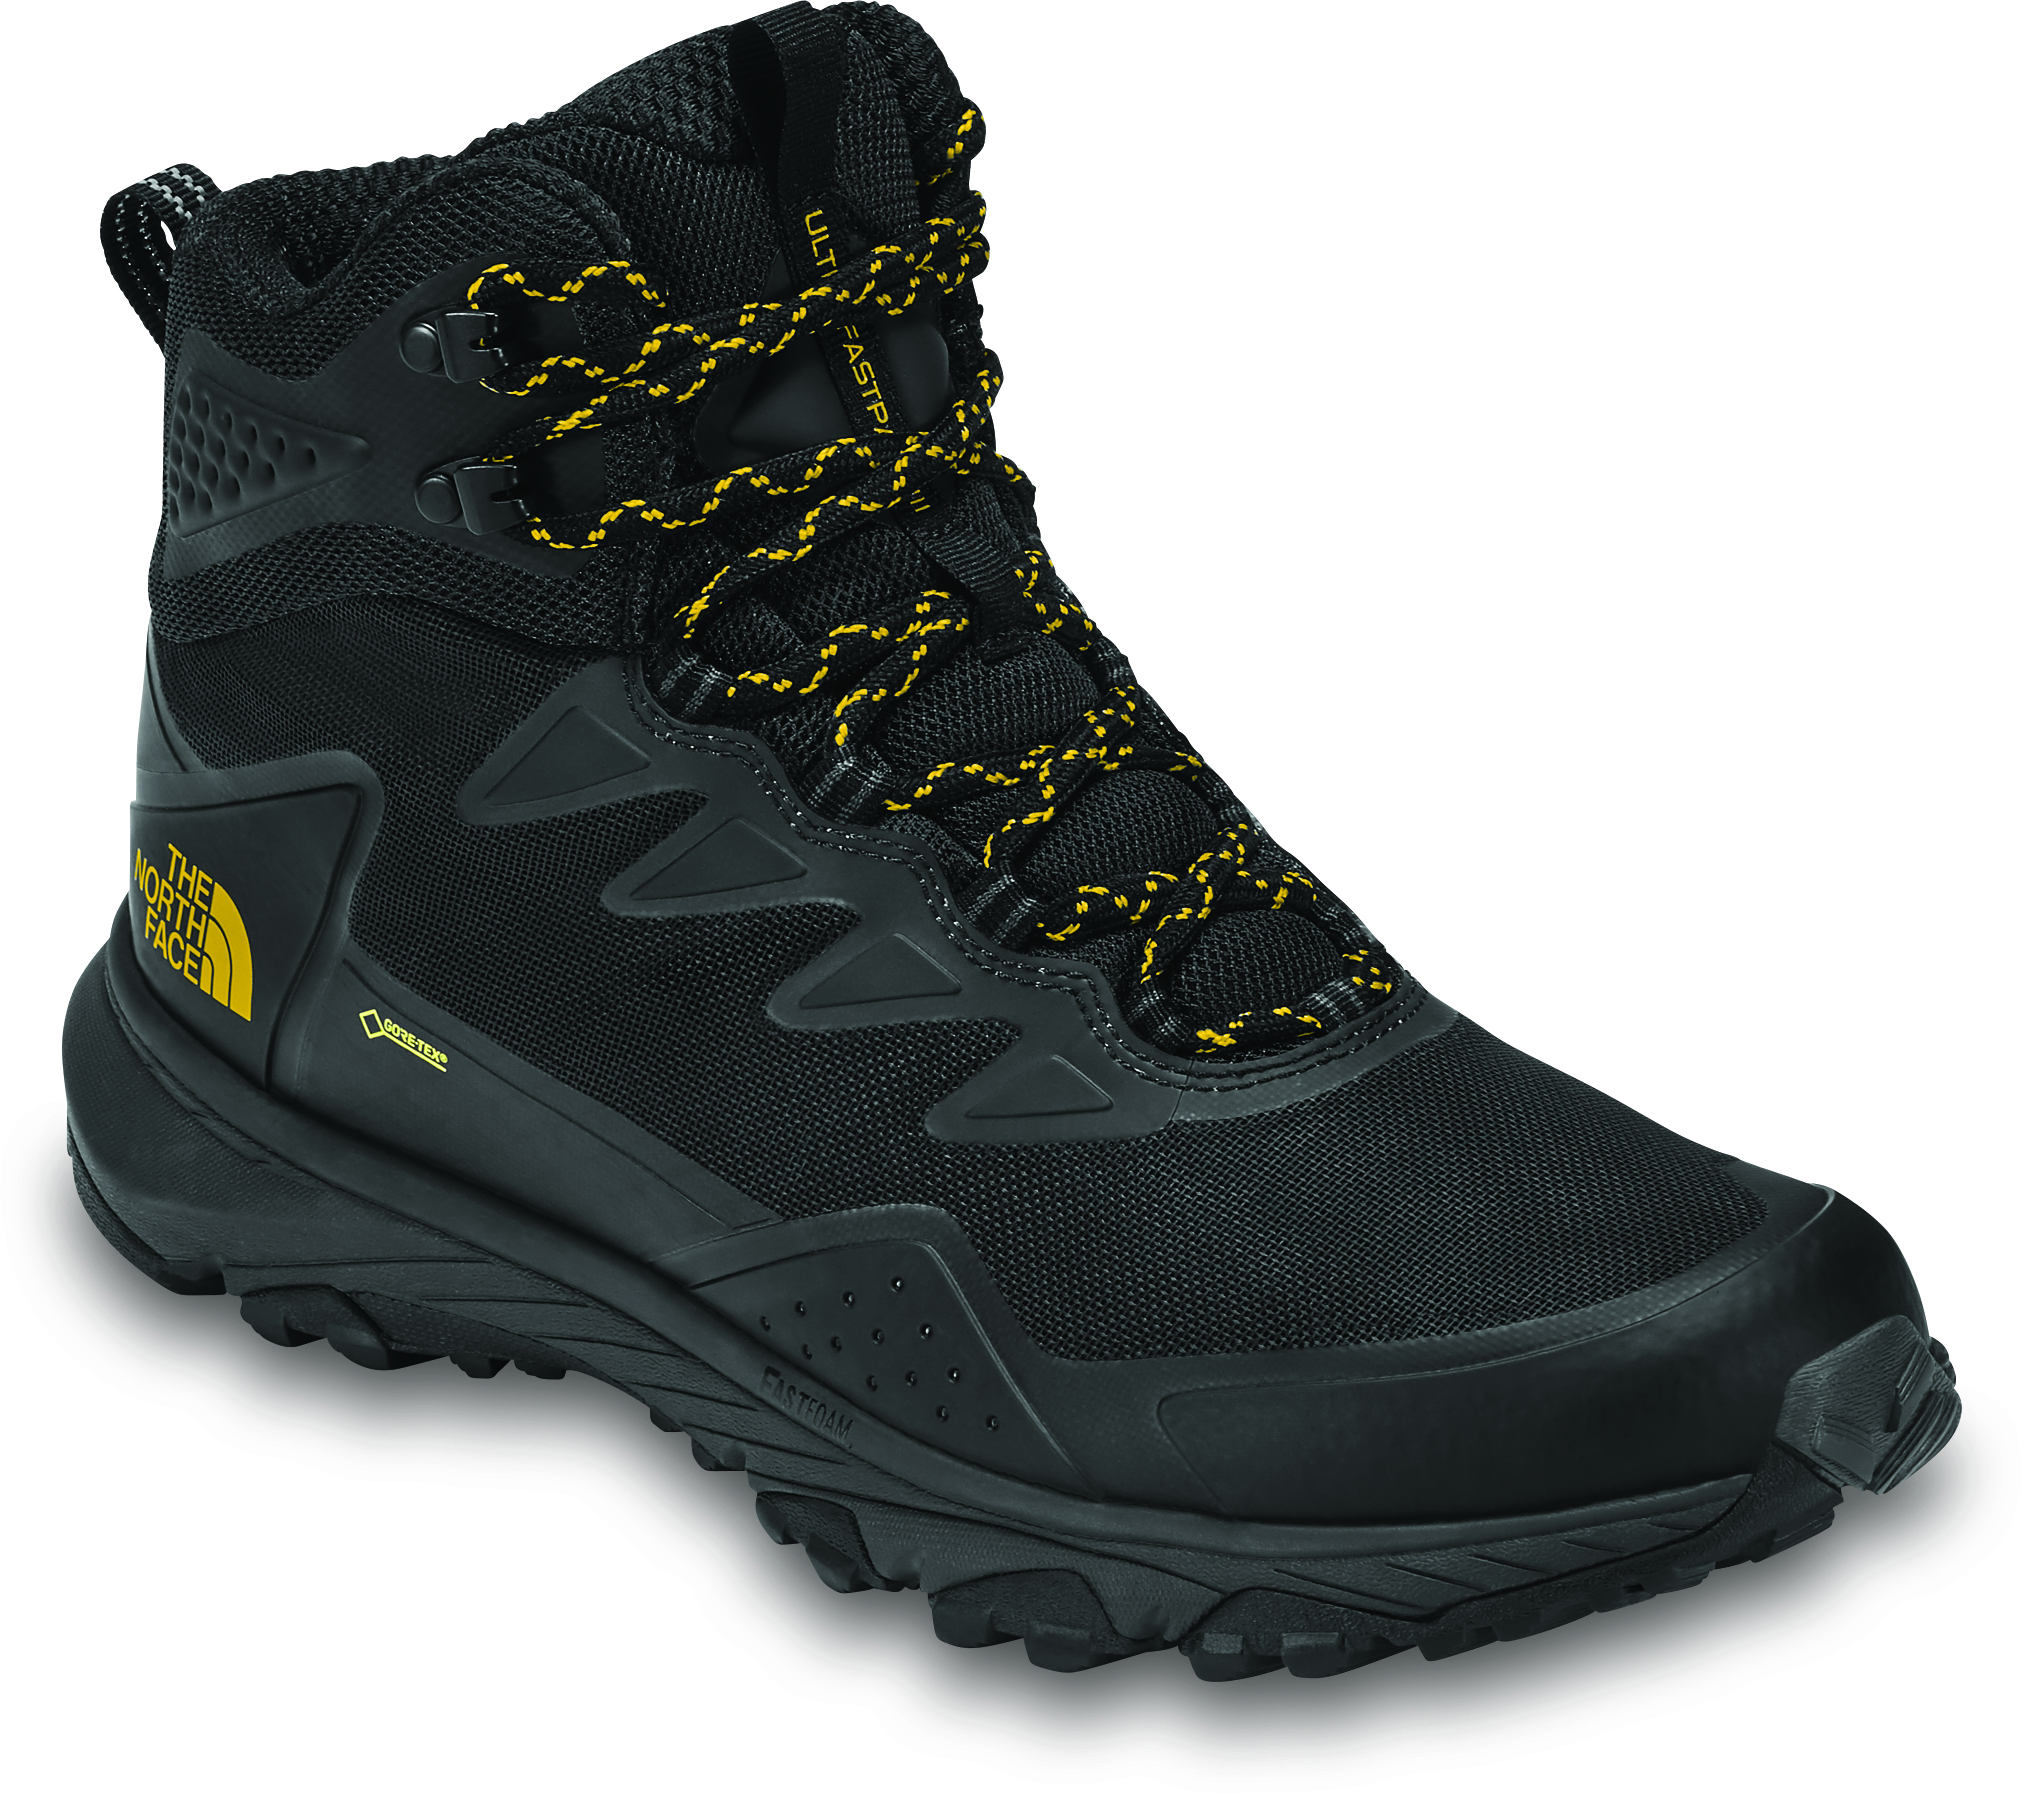 008364df262 The North Face Ultra Fastpack III Mid Gore-Tex Light Trail Shoes - Men's